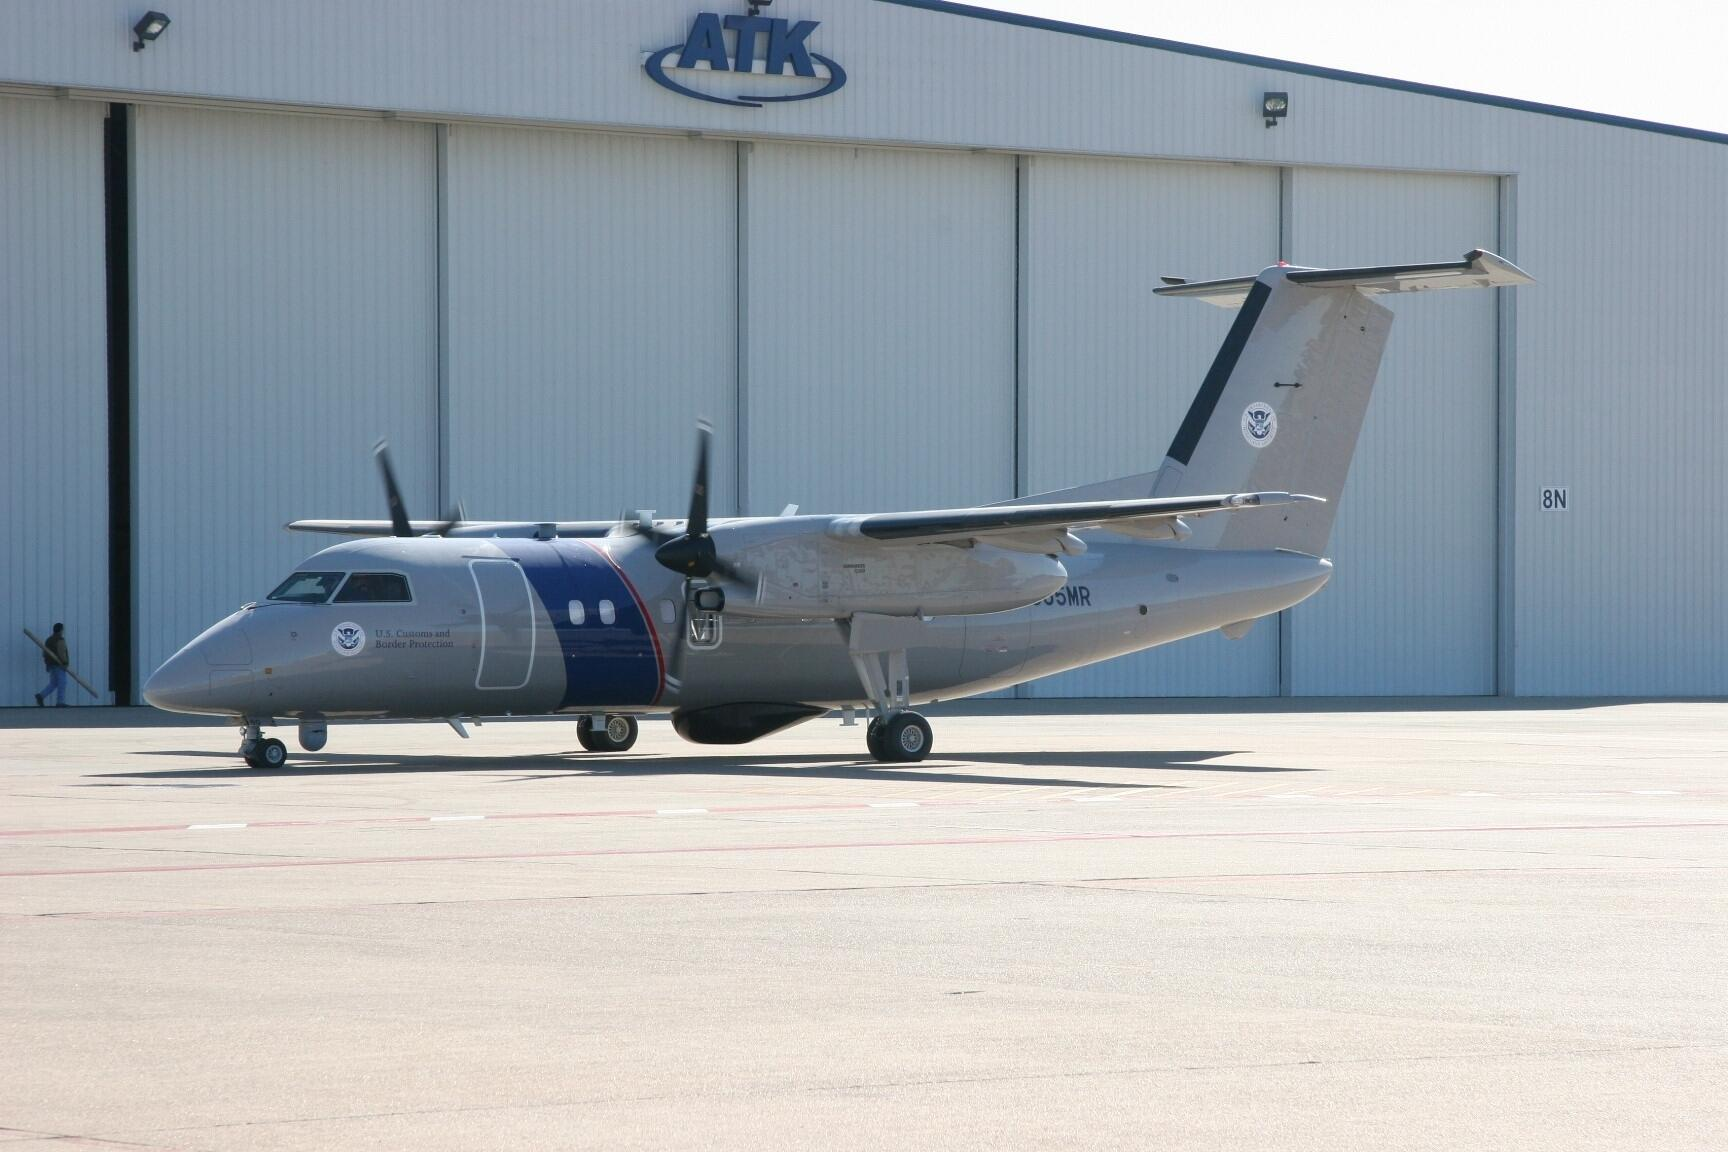 The Bombardier Dash 8 Q200 is a multirole patrol aircraft equipped with multimode radar and electro-optical/infrared sensors that can detect and track maritime and surface targets.